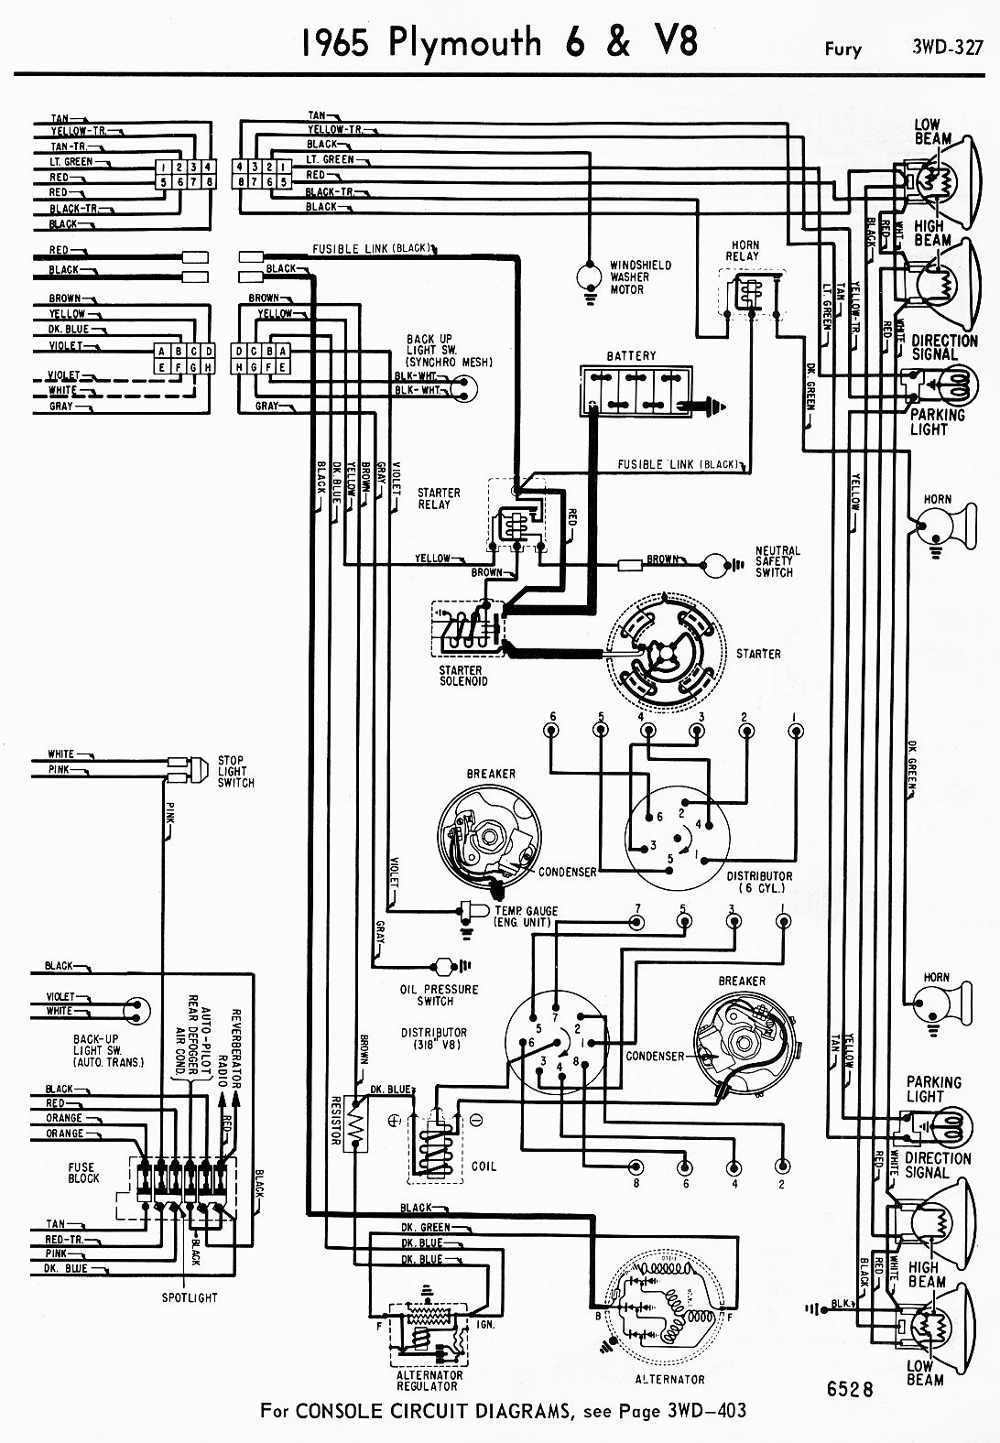 1966 porsche engine diagram wiring schematic online wiring diagram 1984 Porsche 911 Wiring-Diagram 1966 porsche 912 wiring diagram schematic 6 7 ulrich temme de \\u2022headlight wiring diagram 1968